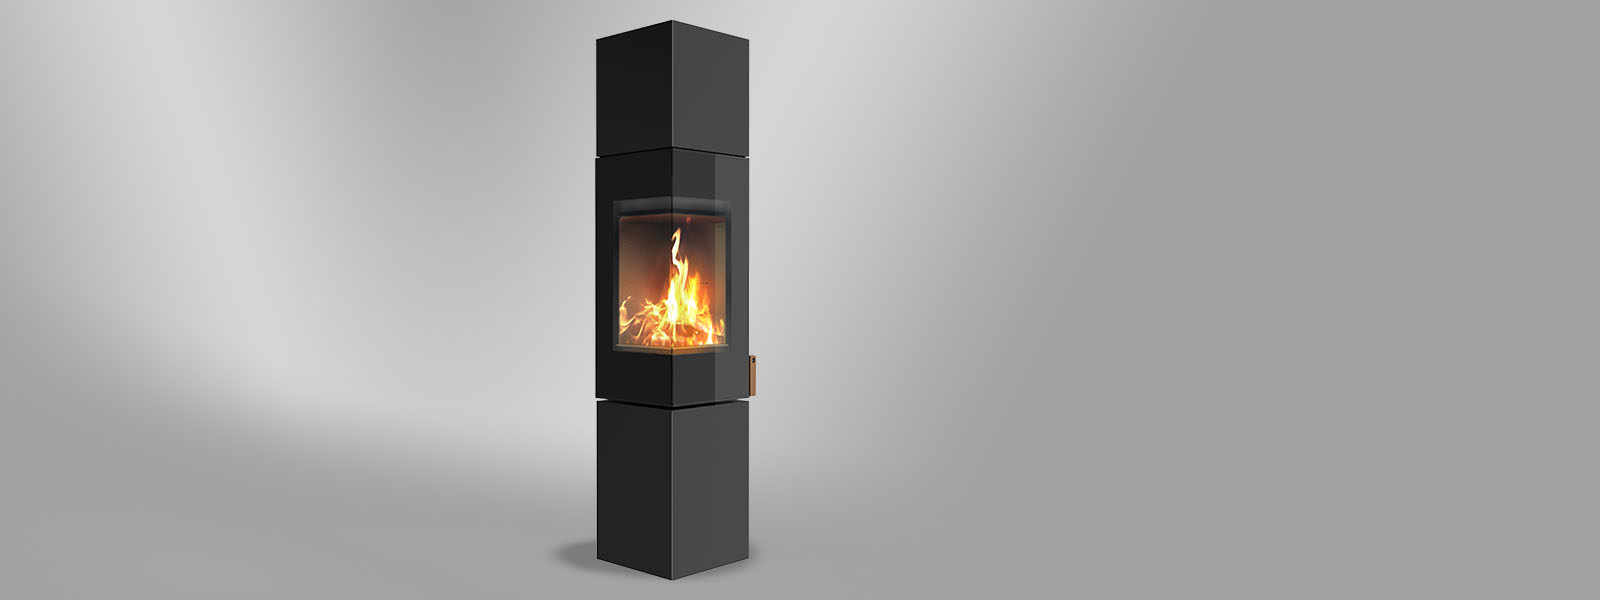 stove q be xl sophisticated functionality and perfect fire. Black Bedroom Furniture Sets. Home Design Ideas